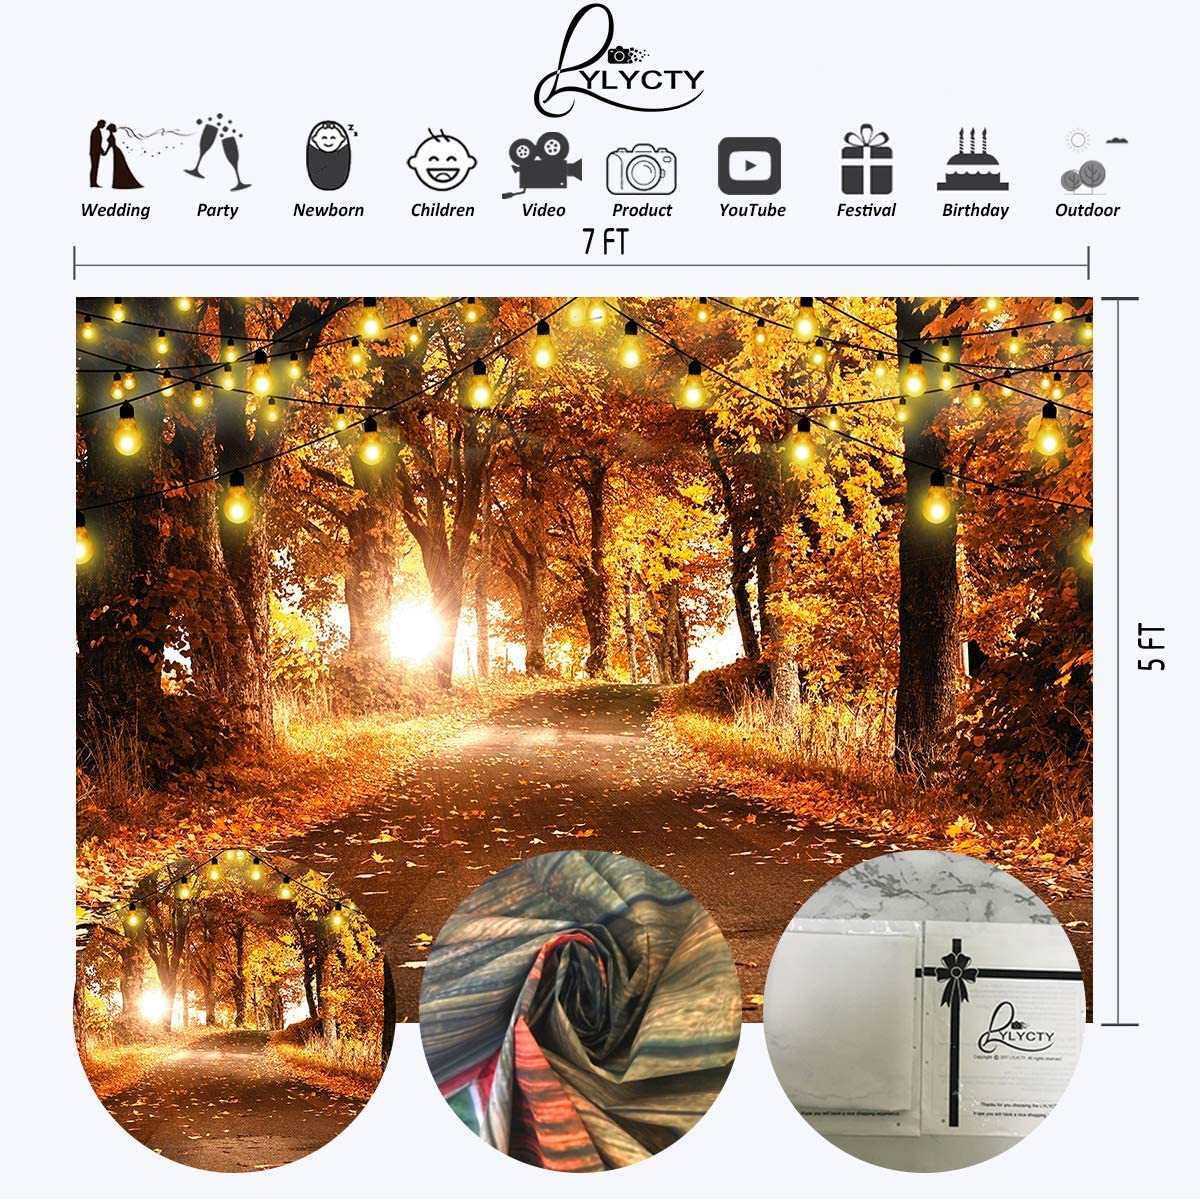 5x7ft Vinyl Autumn Leaves String Lamp Decoration Photography Backdrop Vinyl Theme Party Banner Photo Shooting Props Background LYLS1108 for Party Decoration Birthday YouTube Videos School Photoshoot P